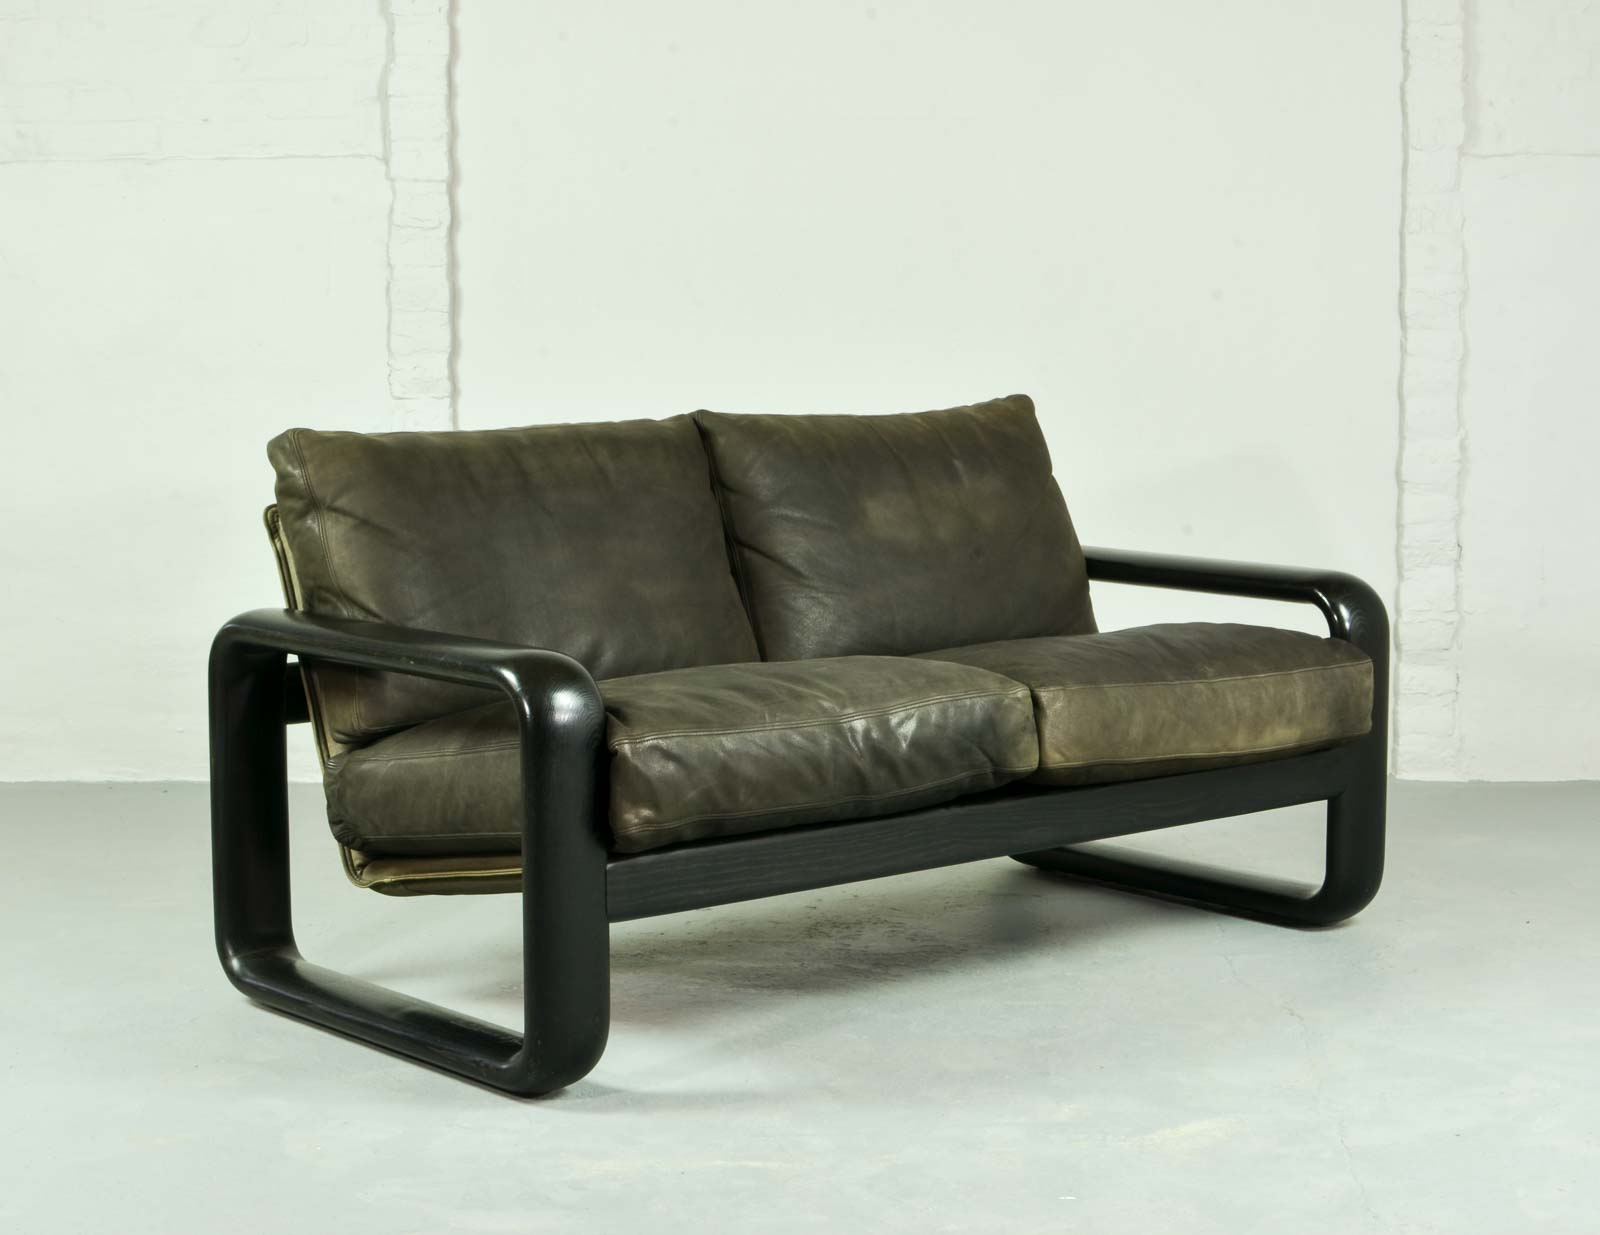 Mid Century Leather Sofa Hombre By Burkhard Vogtherr For Rosenthal Studio Line Hpvintage Com